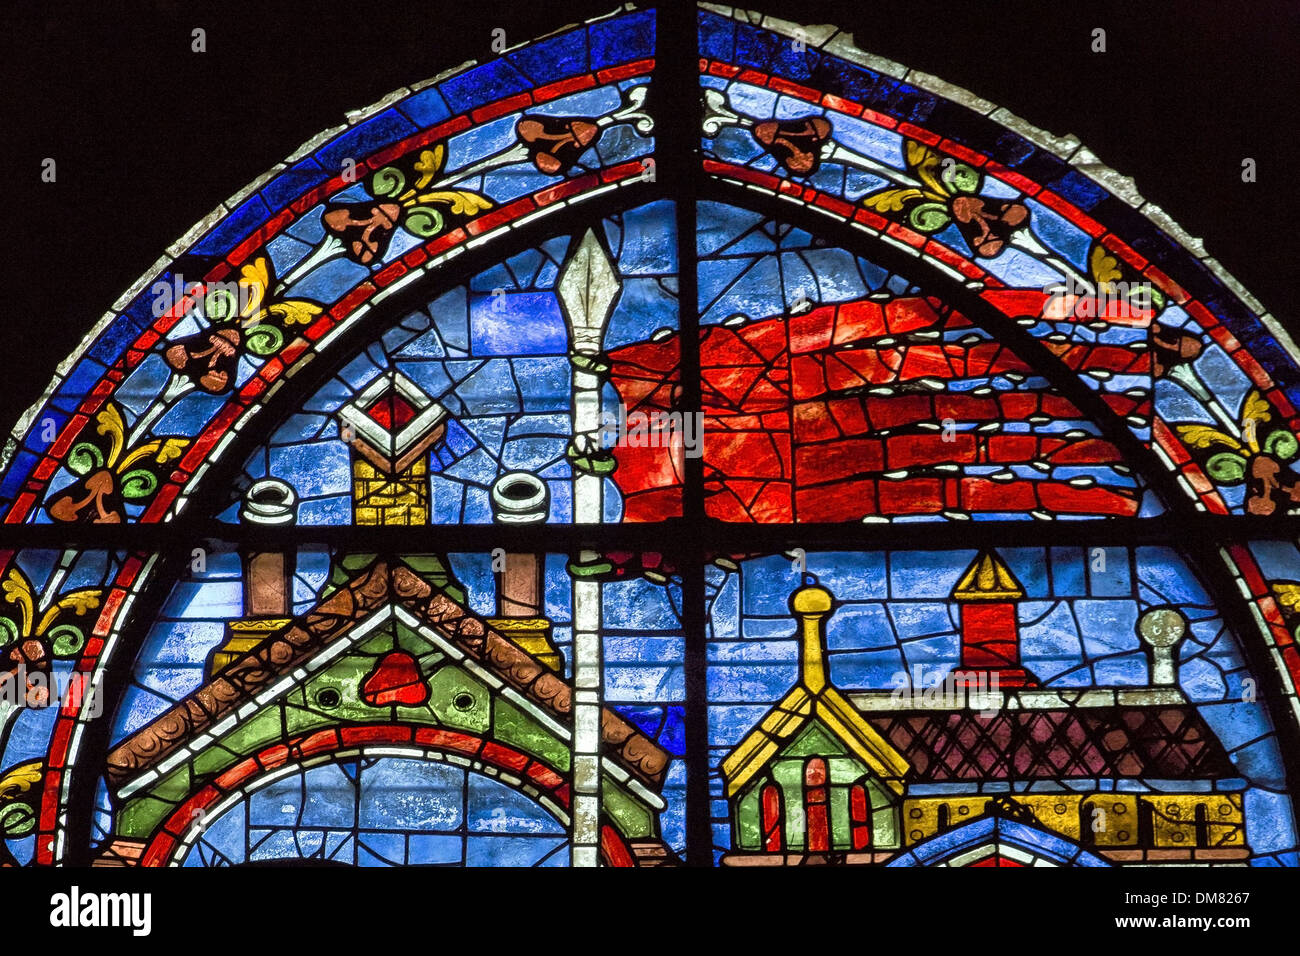 Bien connu STAINED-GLASS WINDOW OF THE ORIFLAMME OF SAINT-DENIS, ONE OF THE  YF06